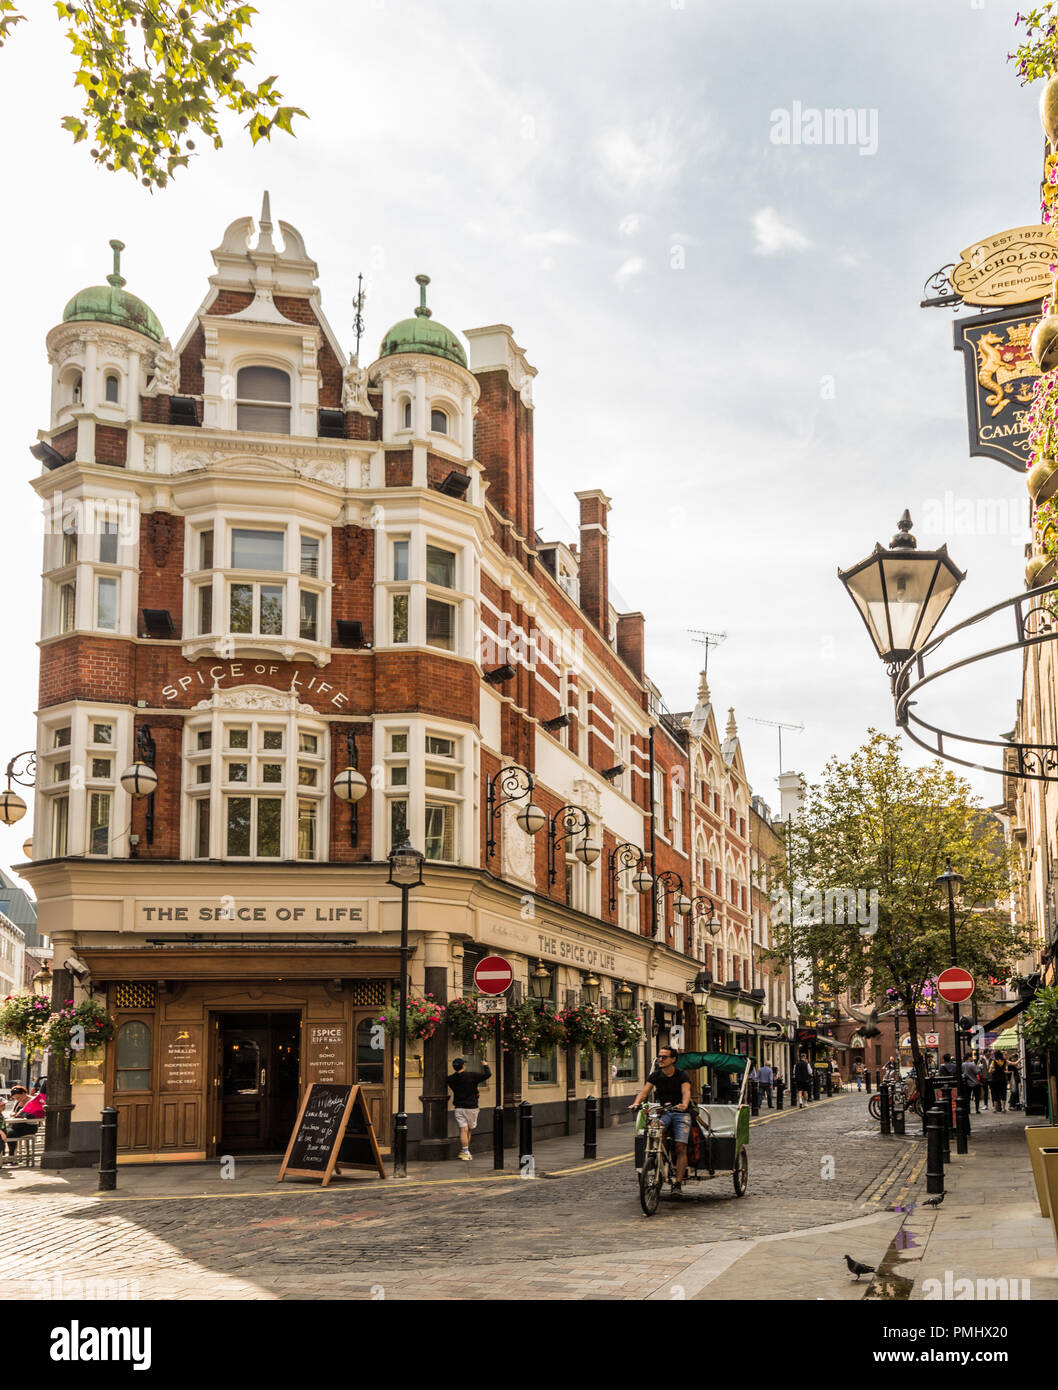 A typical view in London - Stock Image